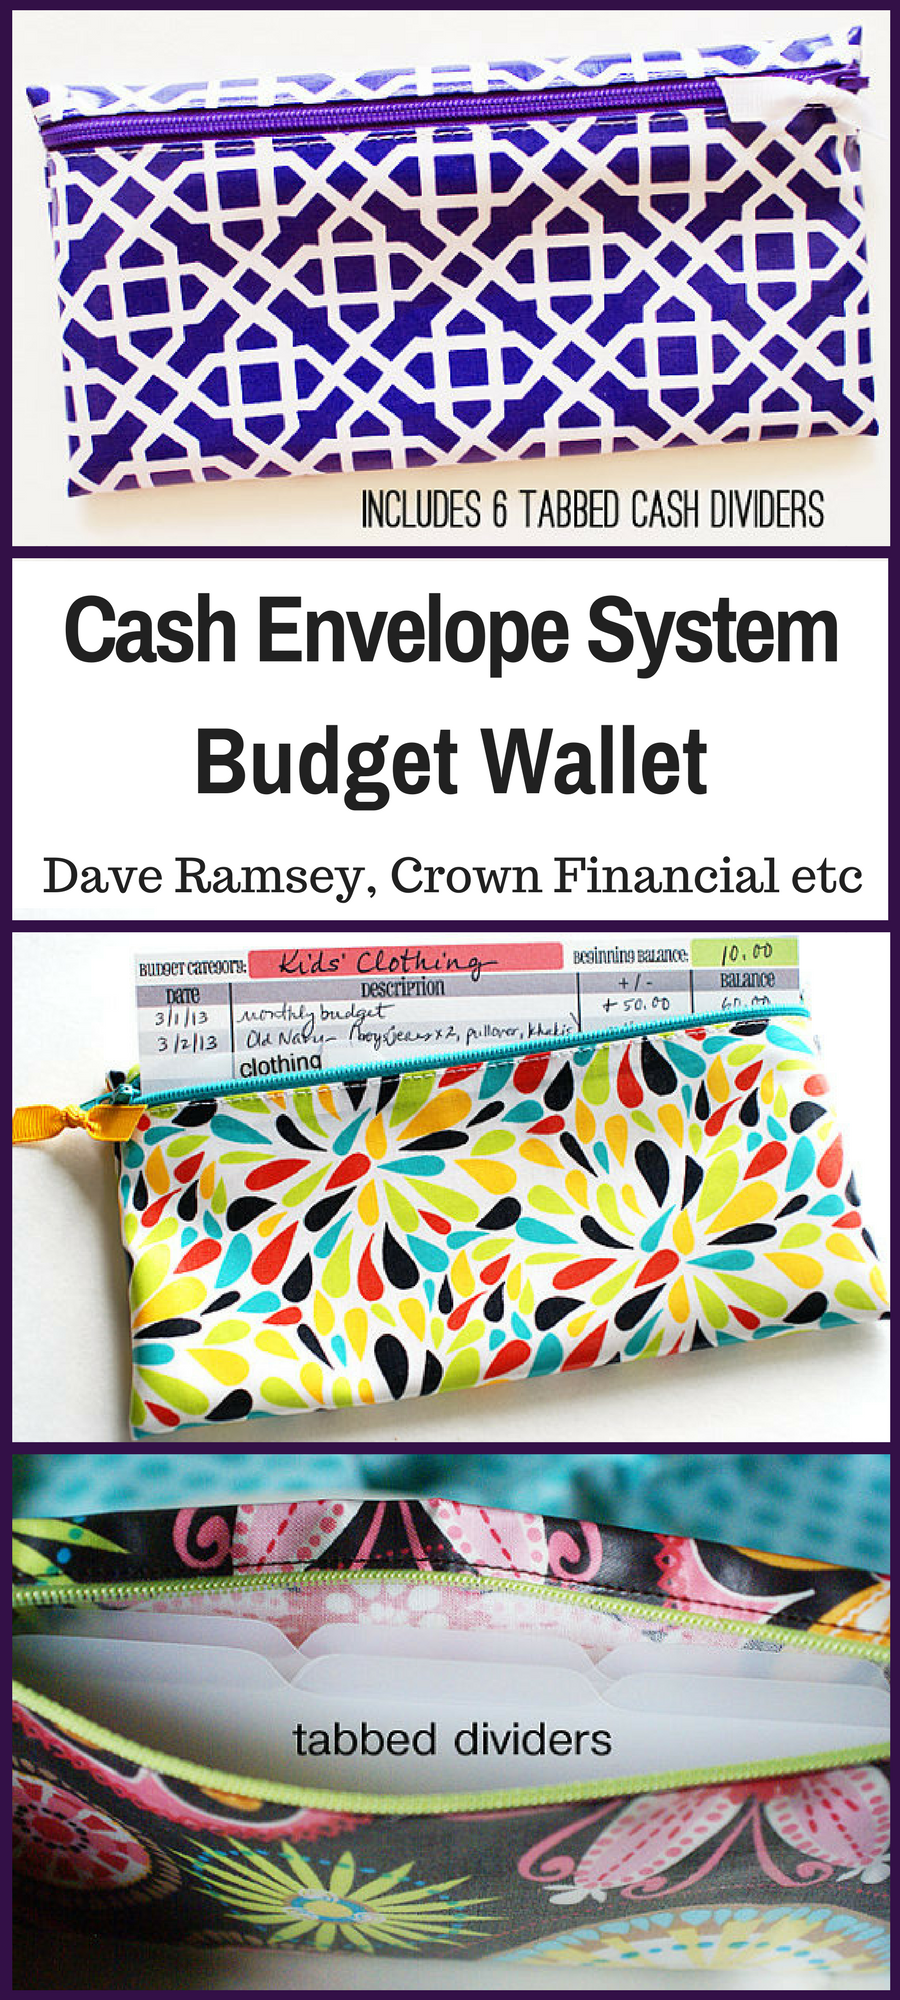 Dave Ramsey Crown Financial Cash Envelope System Budget Wallet With 6 Tabbed Dividers Purple And White Laminated Cotton More Colors Available